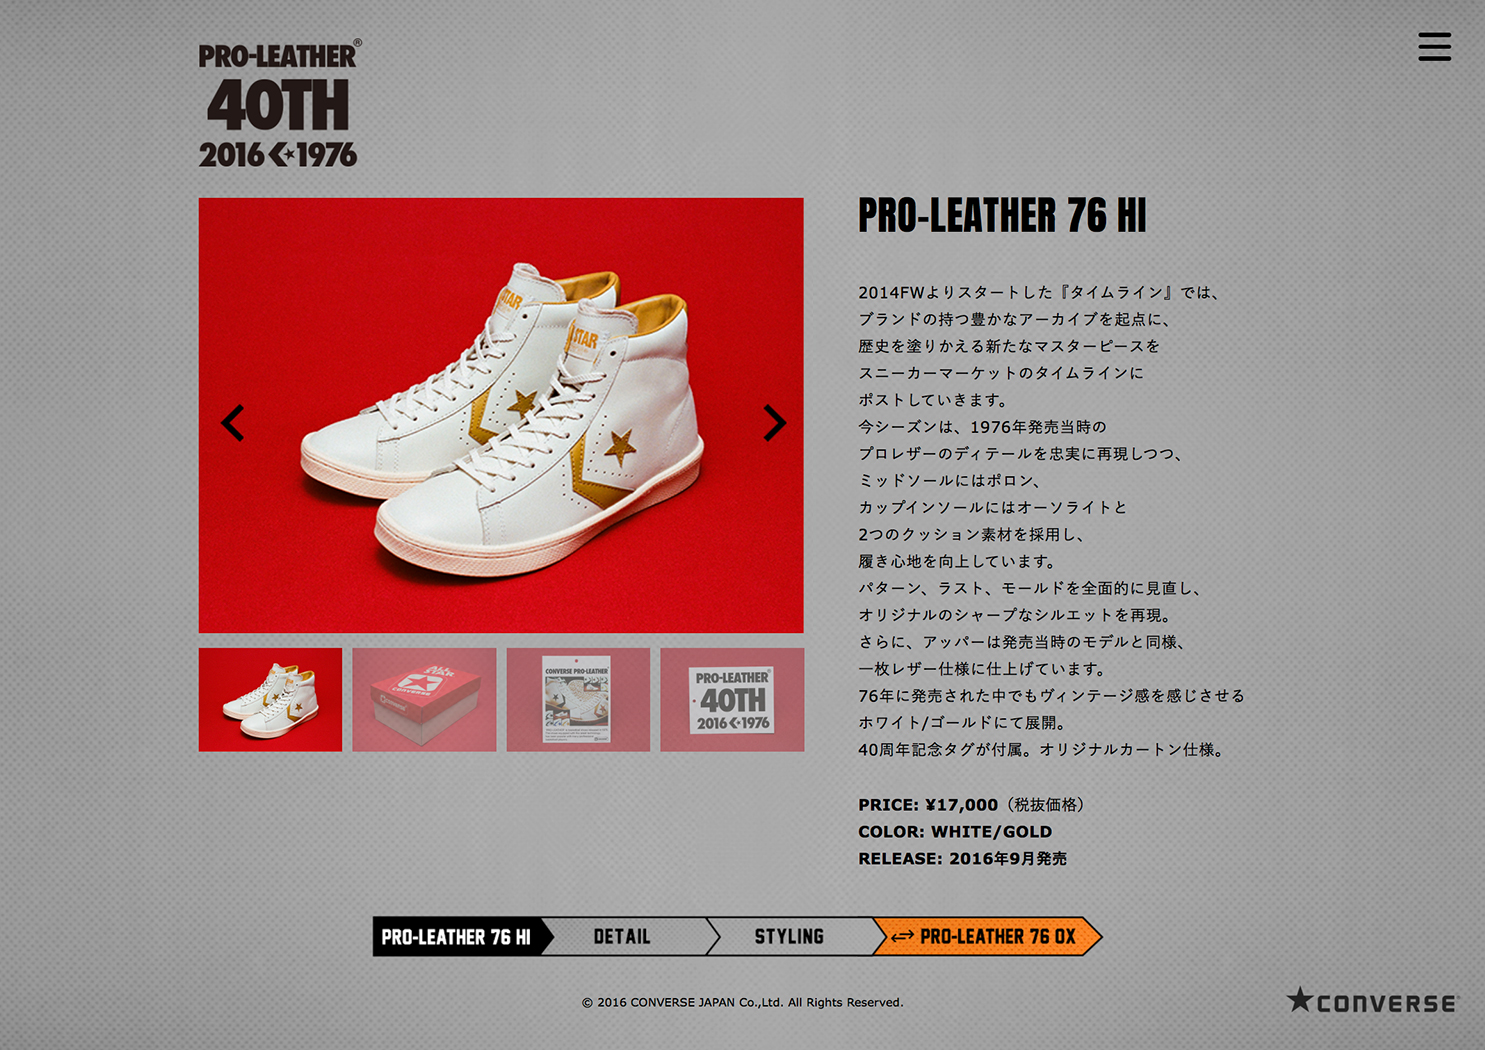 CONVERSE PRO-LEATHER 40TH Website 2016